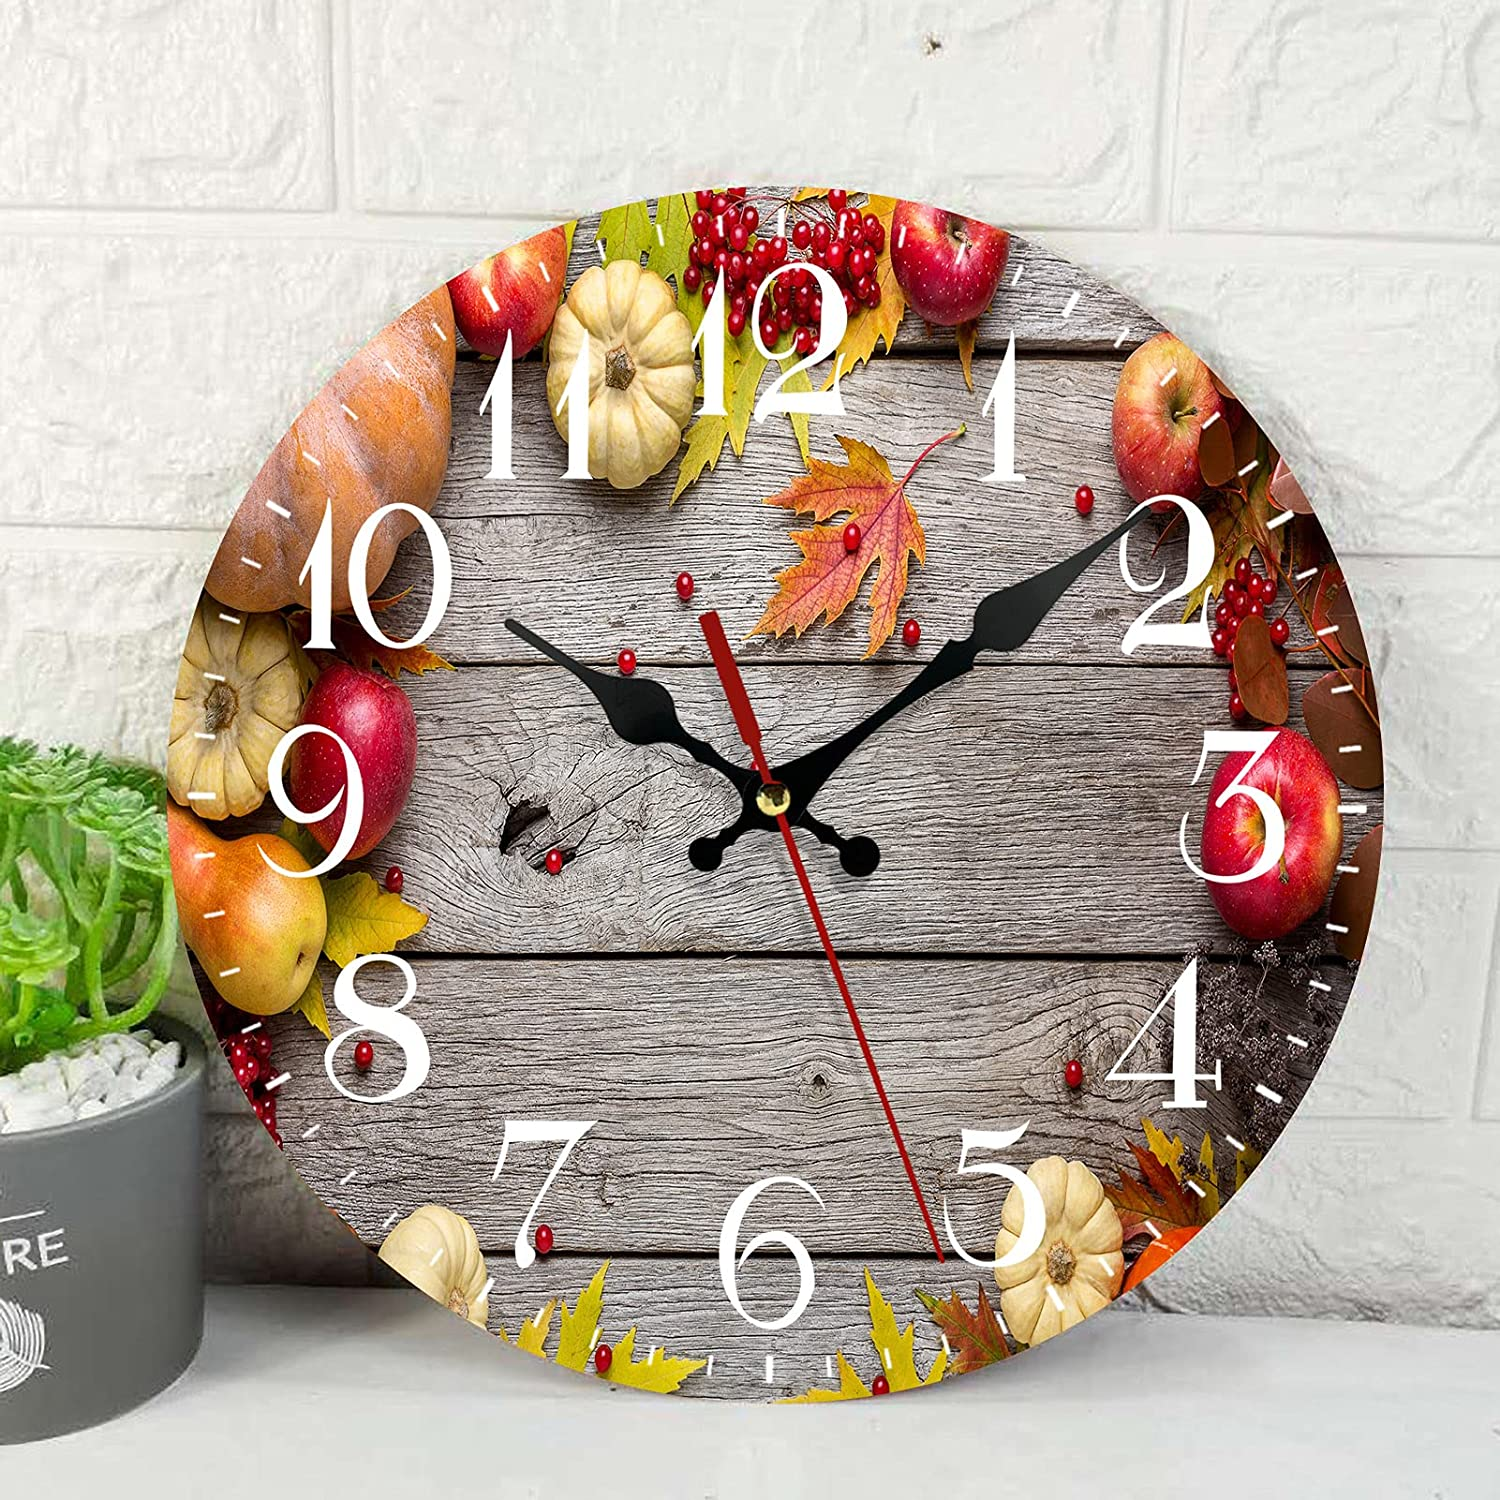 Wooden Wall Clock Silent Non-Ticking ,Autumn Maple Leaves Red Apples Fall Vintage Round Wall Clocks Decor for Home Kitchen Living Room Office, Battery Operated(12 Inch)